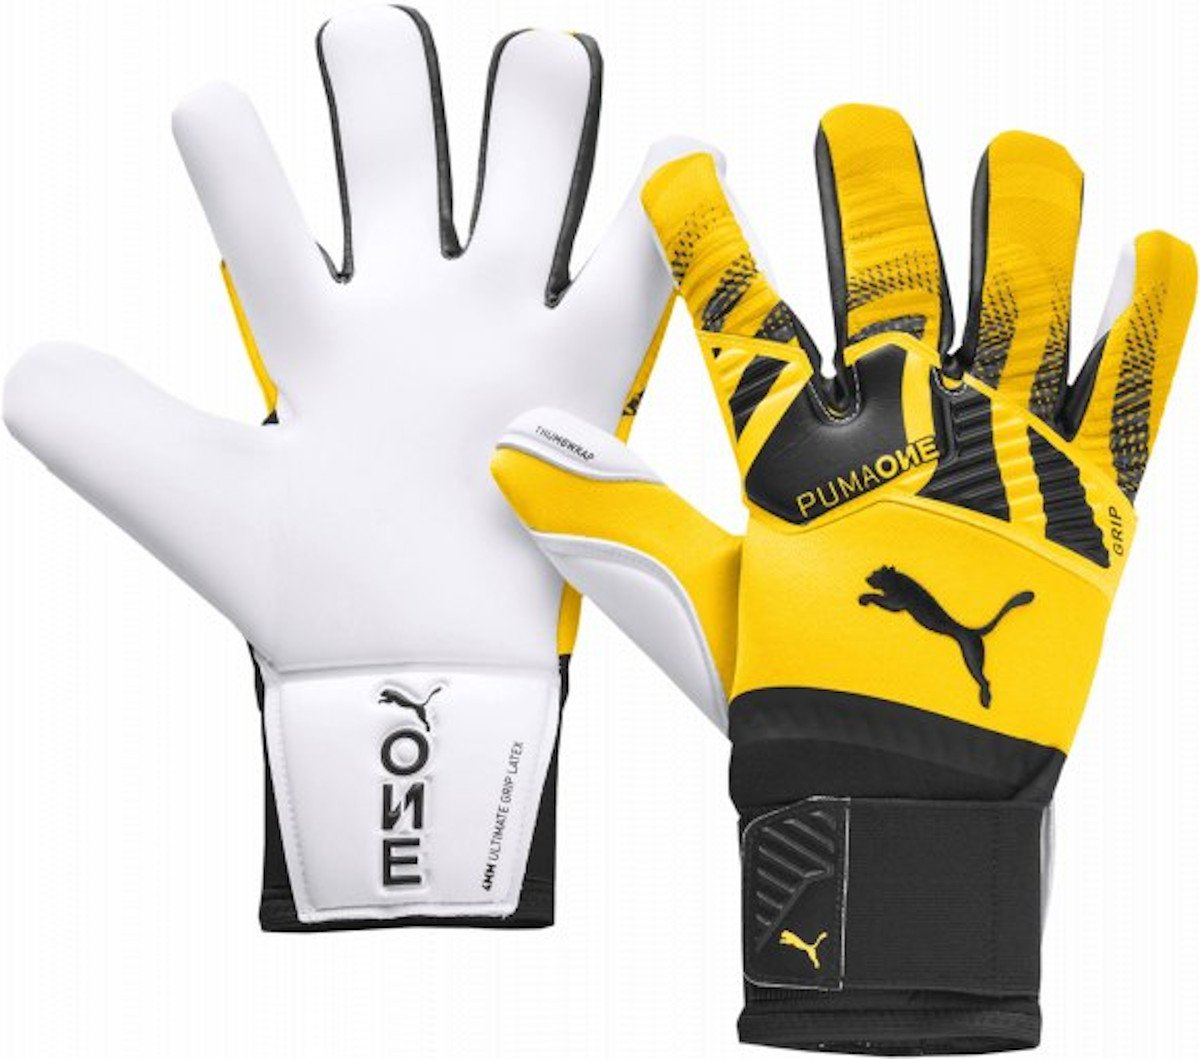 Goalkeeper's gloves Puma One Grip 1 Hybrid Pro TW GG